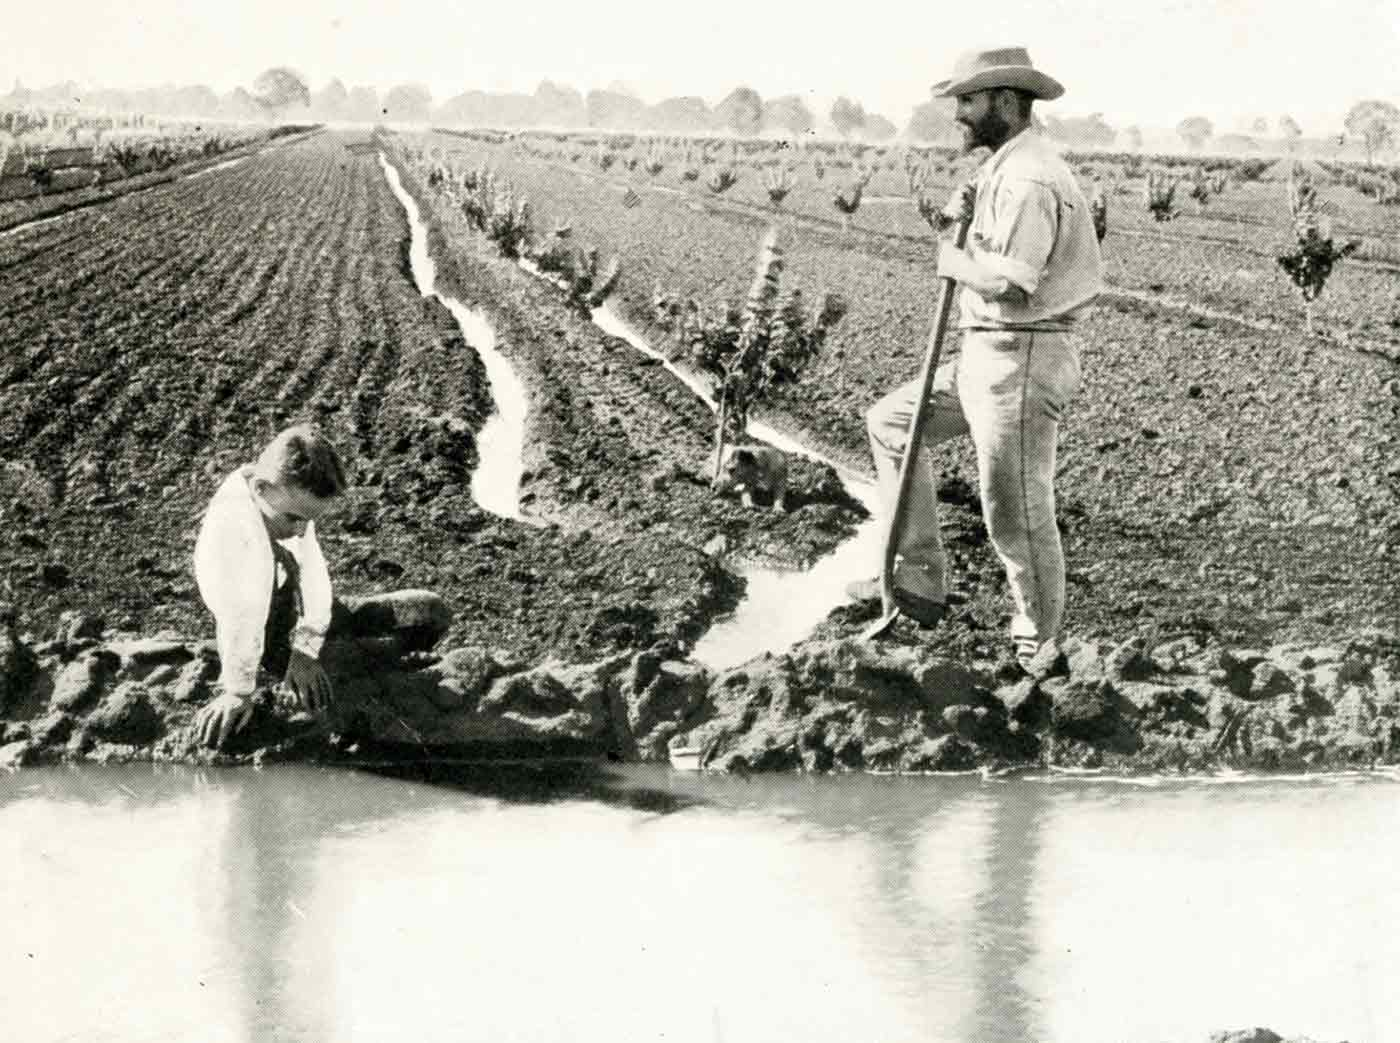 A man stands in a field, resting his foot on a shovel. Another man sits in the foreground. The field has rows of small shrubs with channels of water at the side.